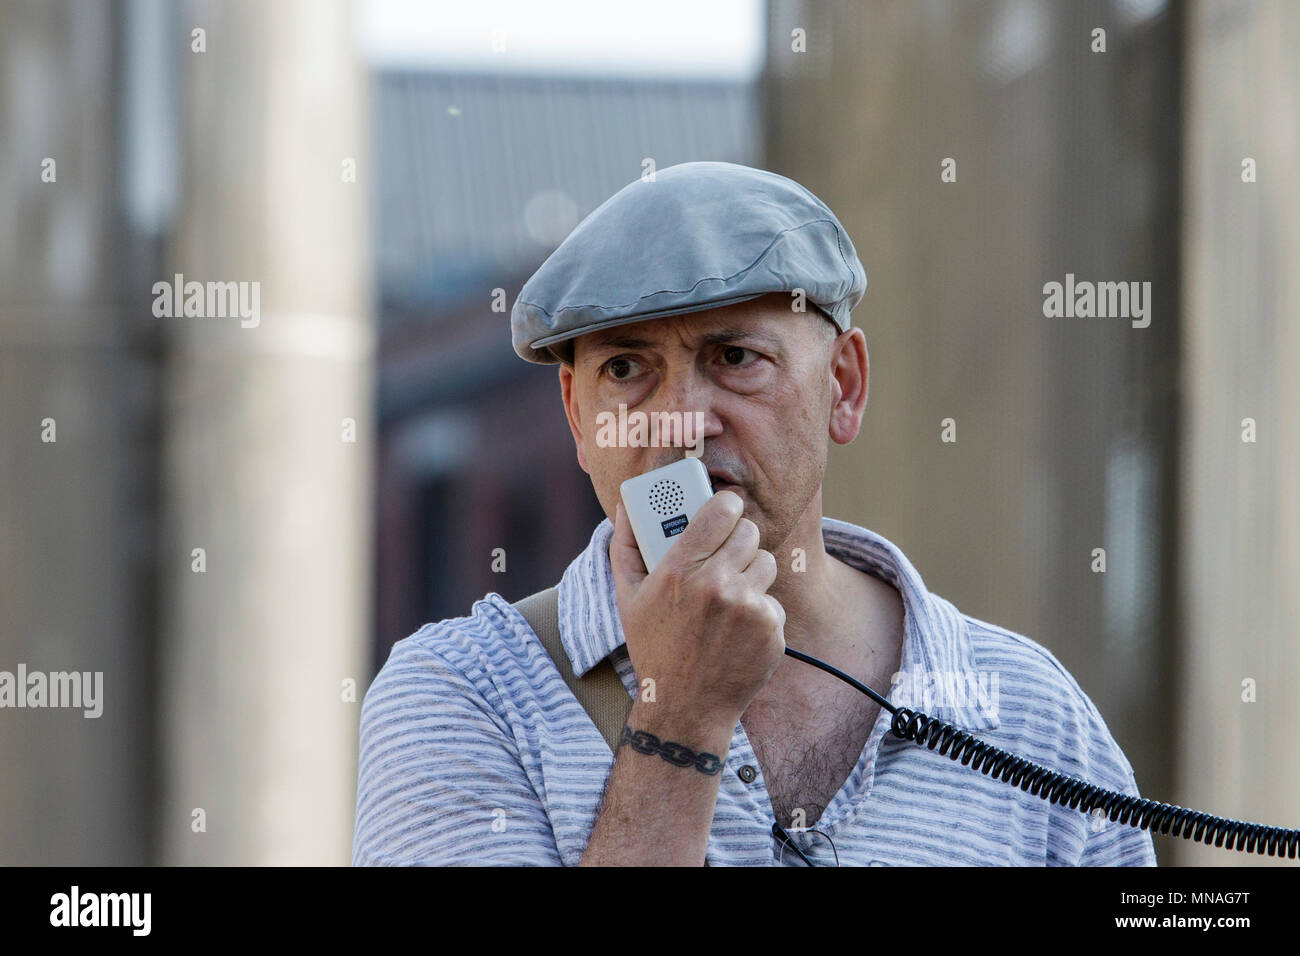 Bristol, UK. 15th May, 2018. A speaker representing the Jewish Voice For Labour is pictured as he speaks to the crowd ahead of a Pro-Palestinian protest march through Bristol. The protest march and rally was held to allow people to show their support and solidarity with the Palestinian people after 70 Years of Nakba and to protest about Israel's recent actions in Gaza. - Stock Image